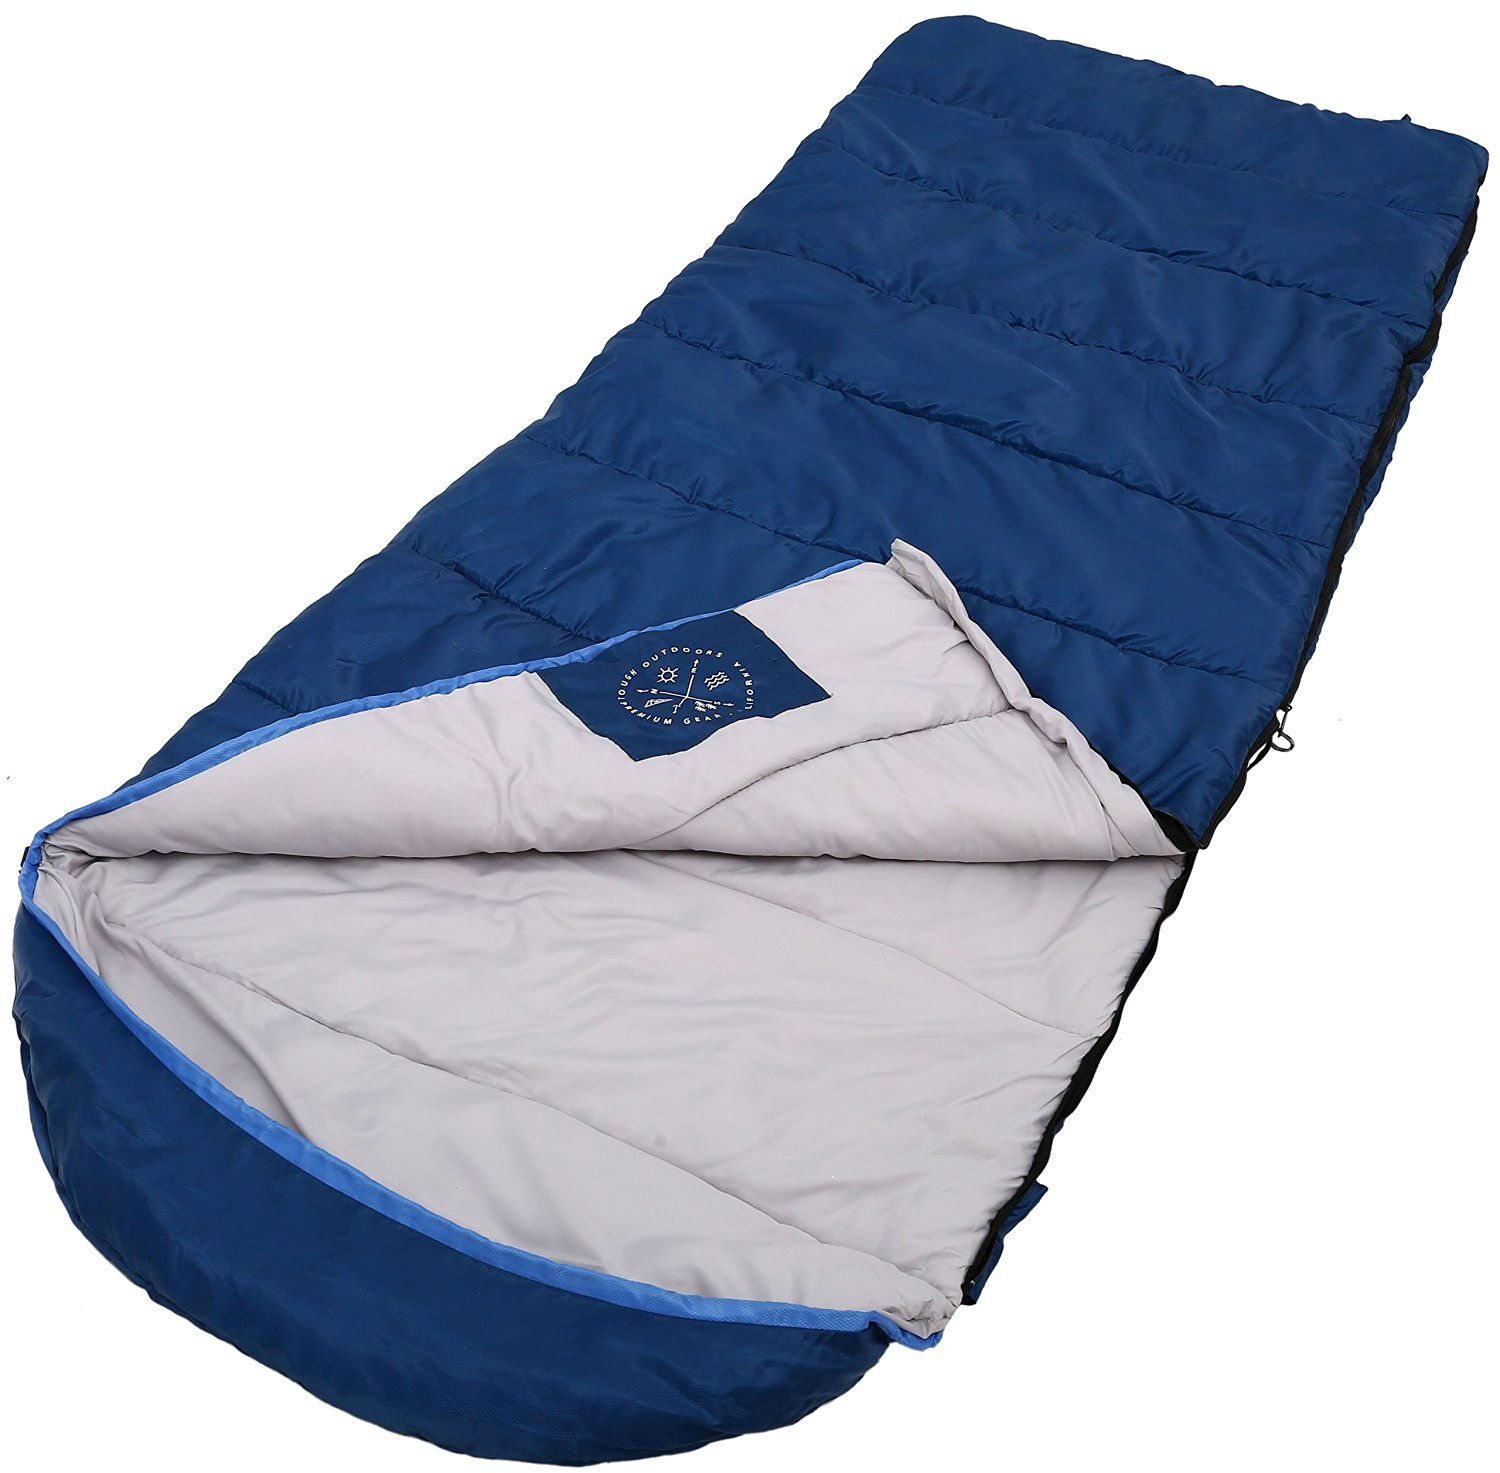 """Camping accessories :""""All Season Sleeping Bag with Hood [88x34in] - Comfort Temperature Range of 32-60_F. Constructed with a Ripstop Waterproof Shell : Woven Polyester Liner and High-Loft Fill. Comfortably Fits Most up to 6'6."""" ** Tried it! Love it! Click the image."""